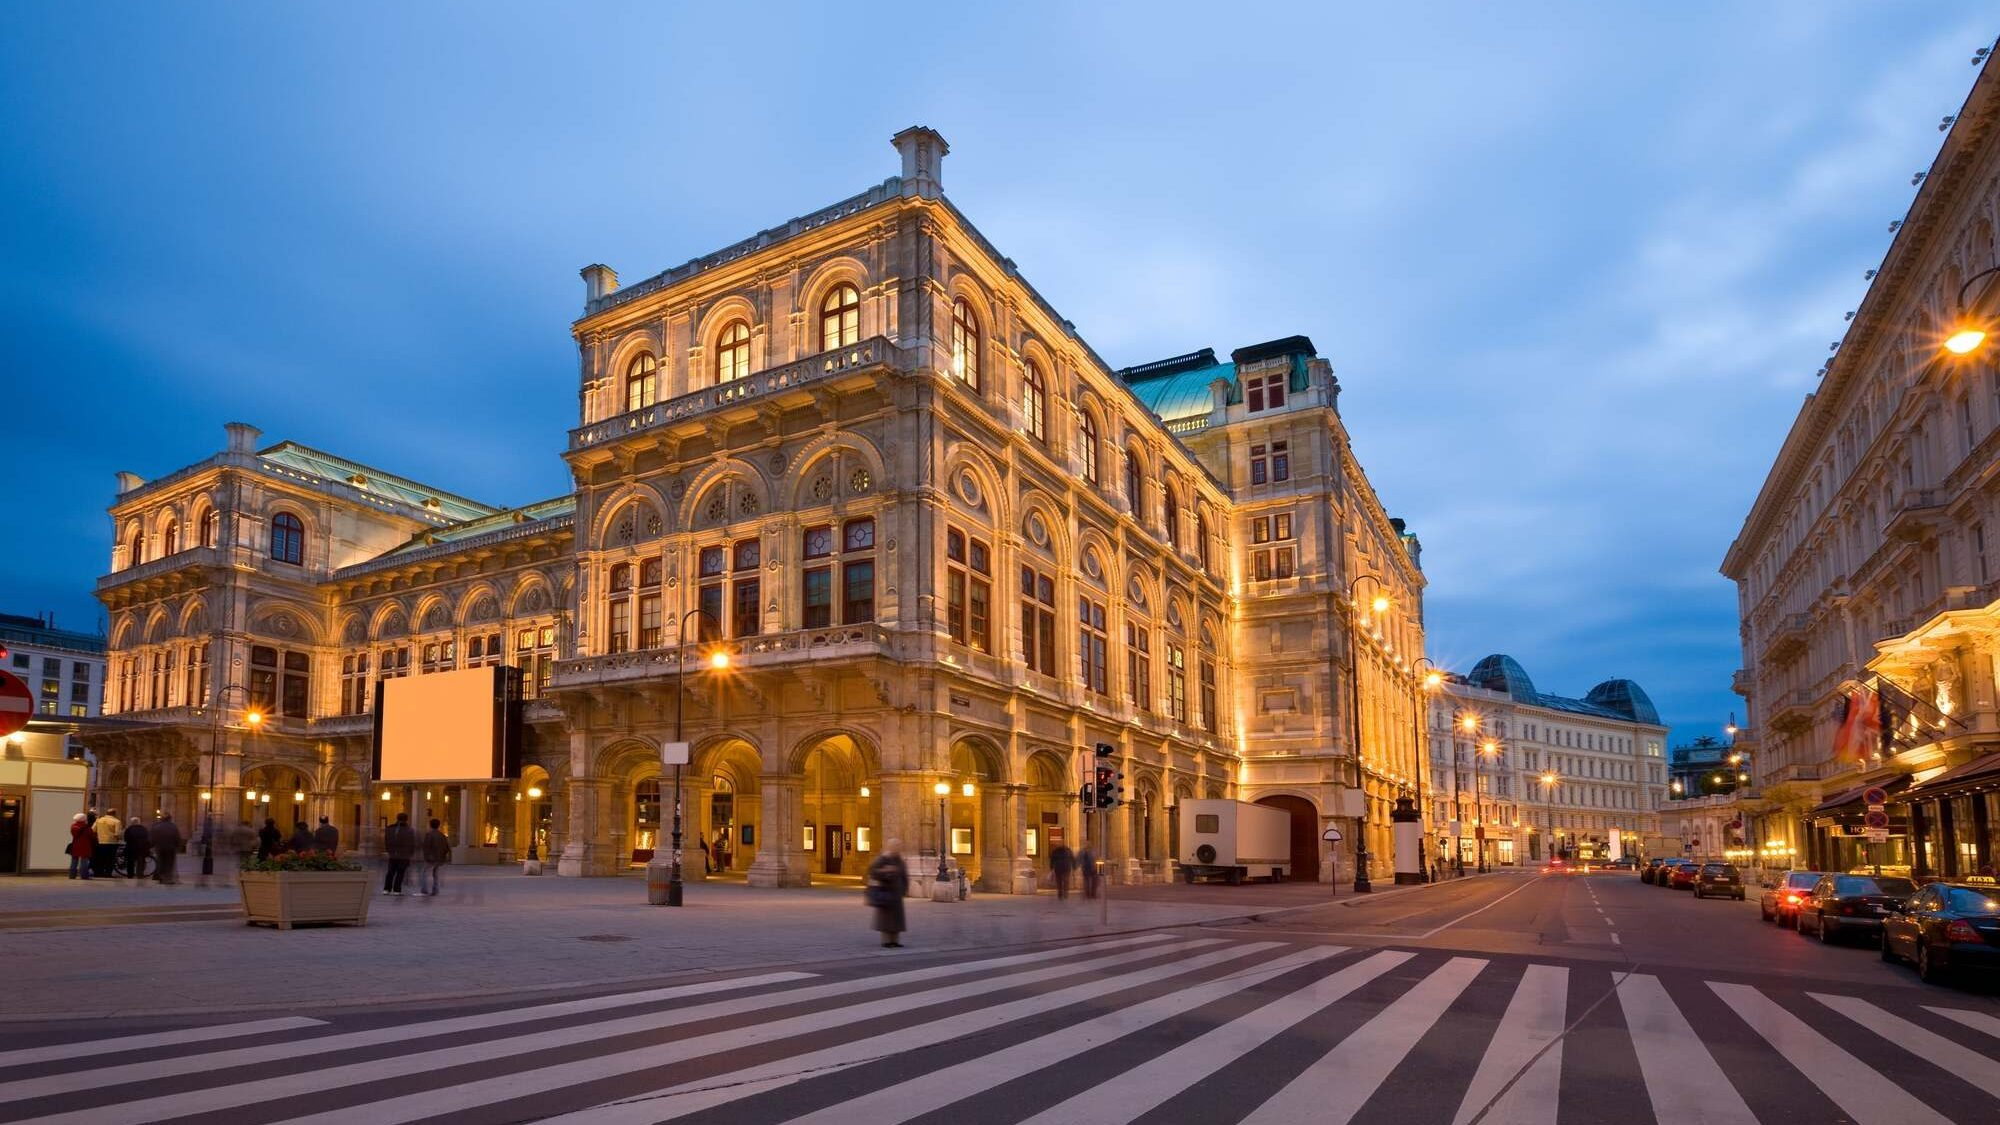 7th International festival of choirs and orchestras in Vienna (Austria)